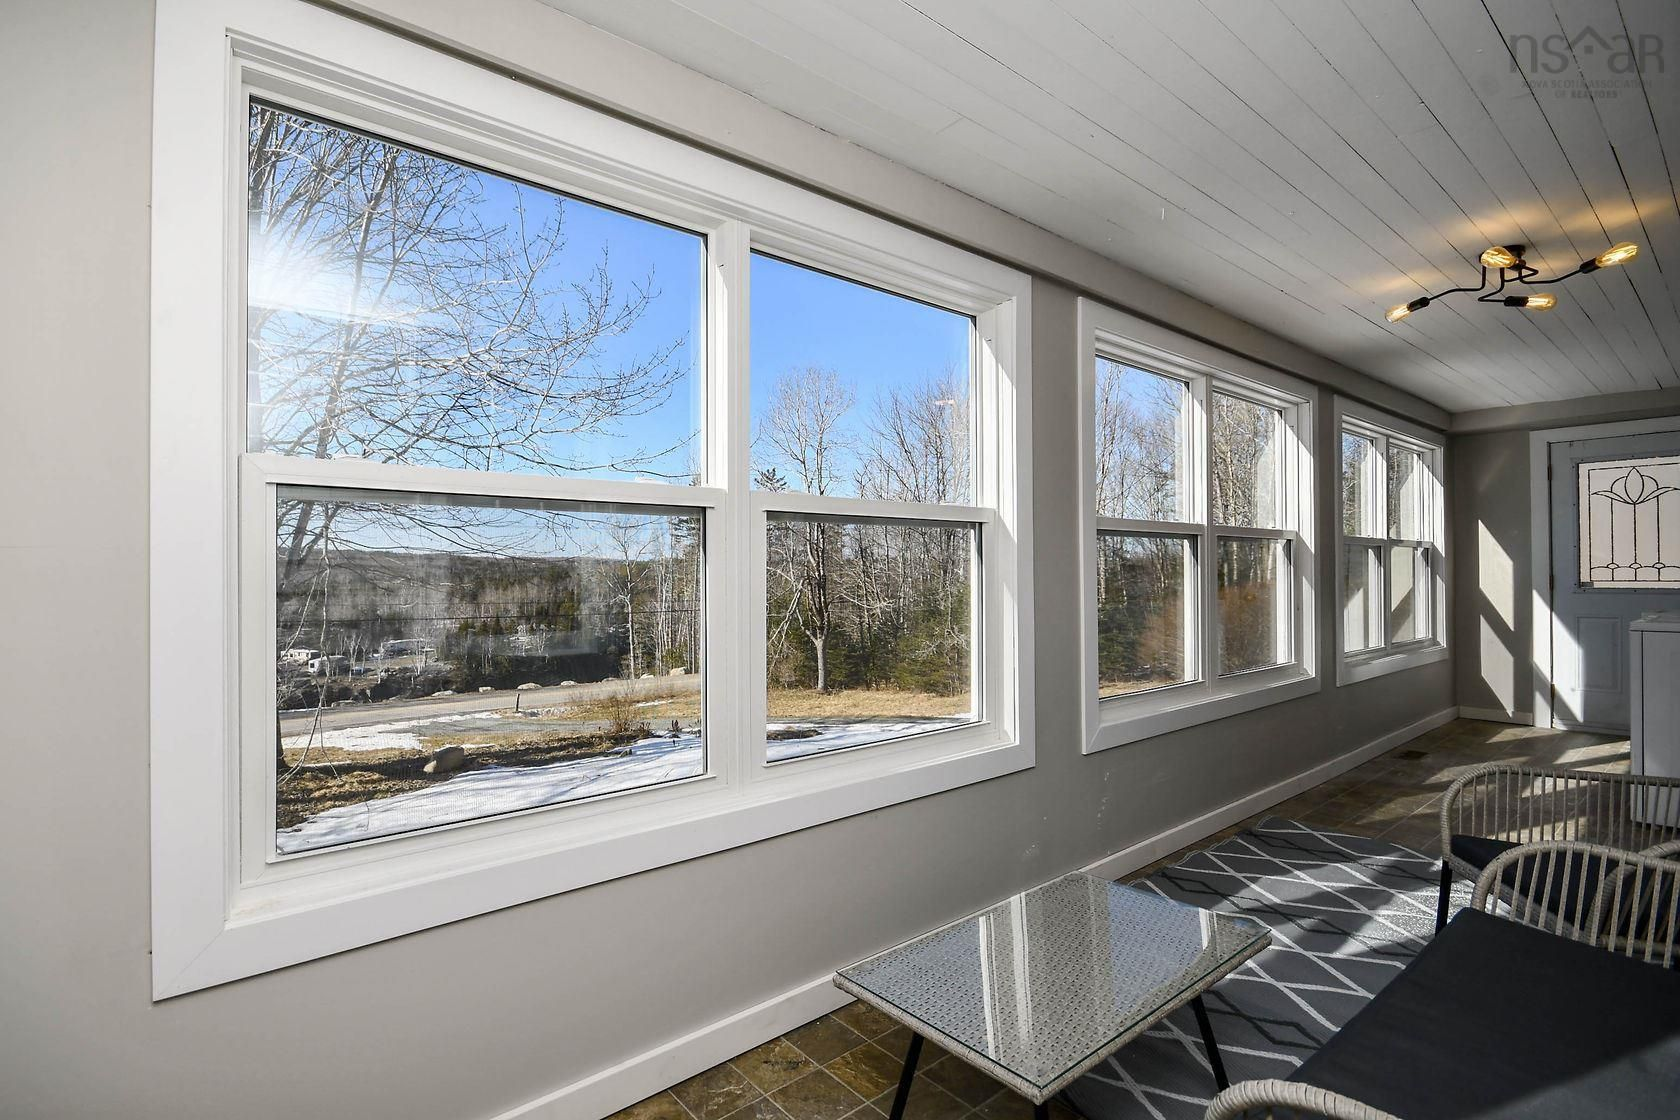 Photo 19: Photos: 284 East River Road in Sheet Harbour: 35-Halifax County East Residential for sale (Halifax-Dartmouth)  : MLS®# 202120104